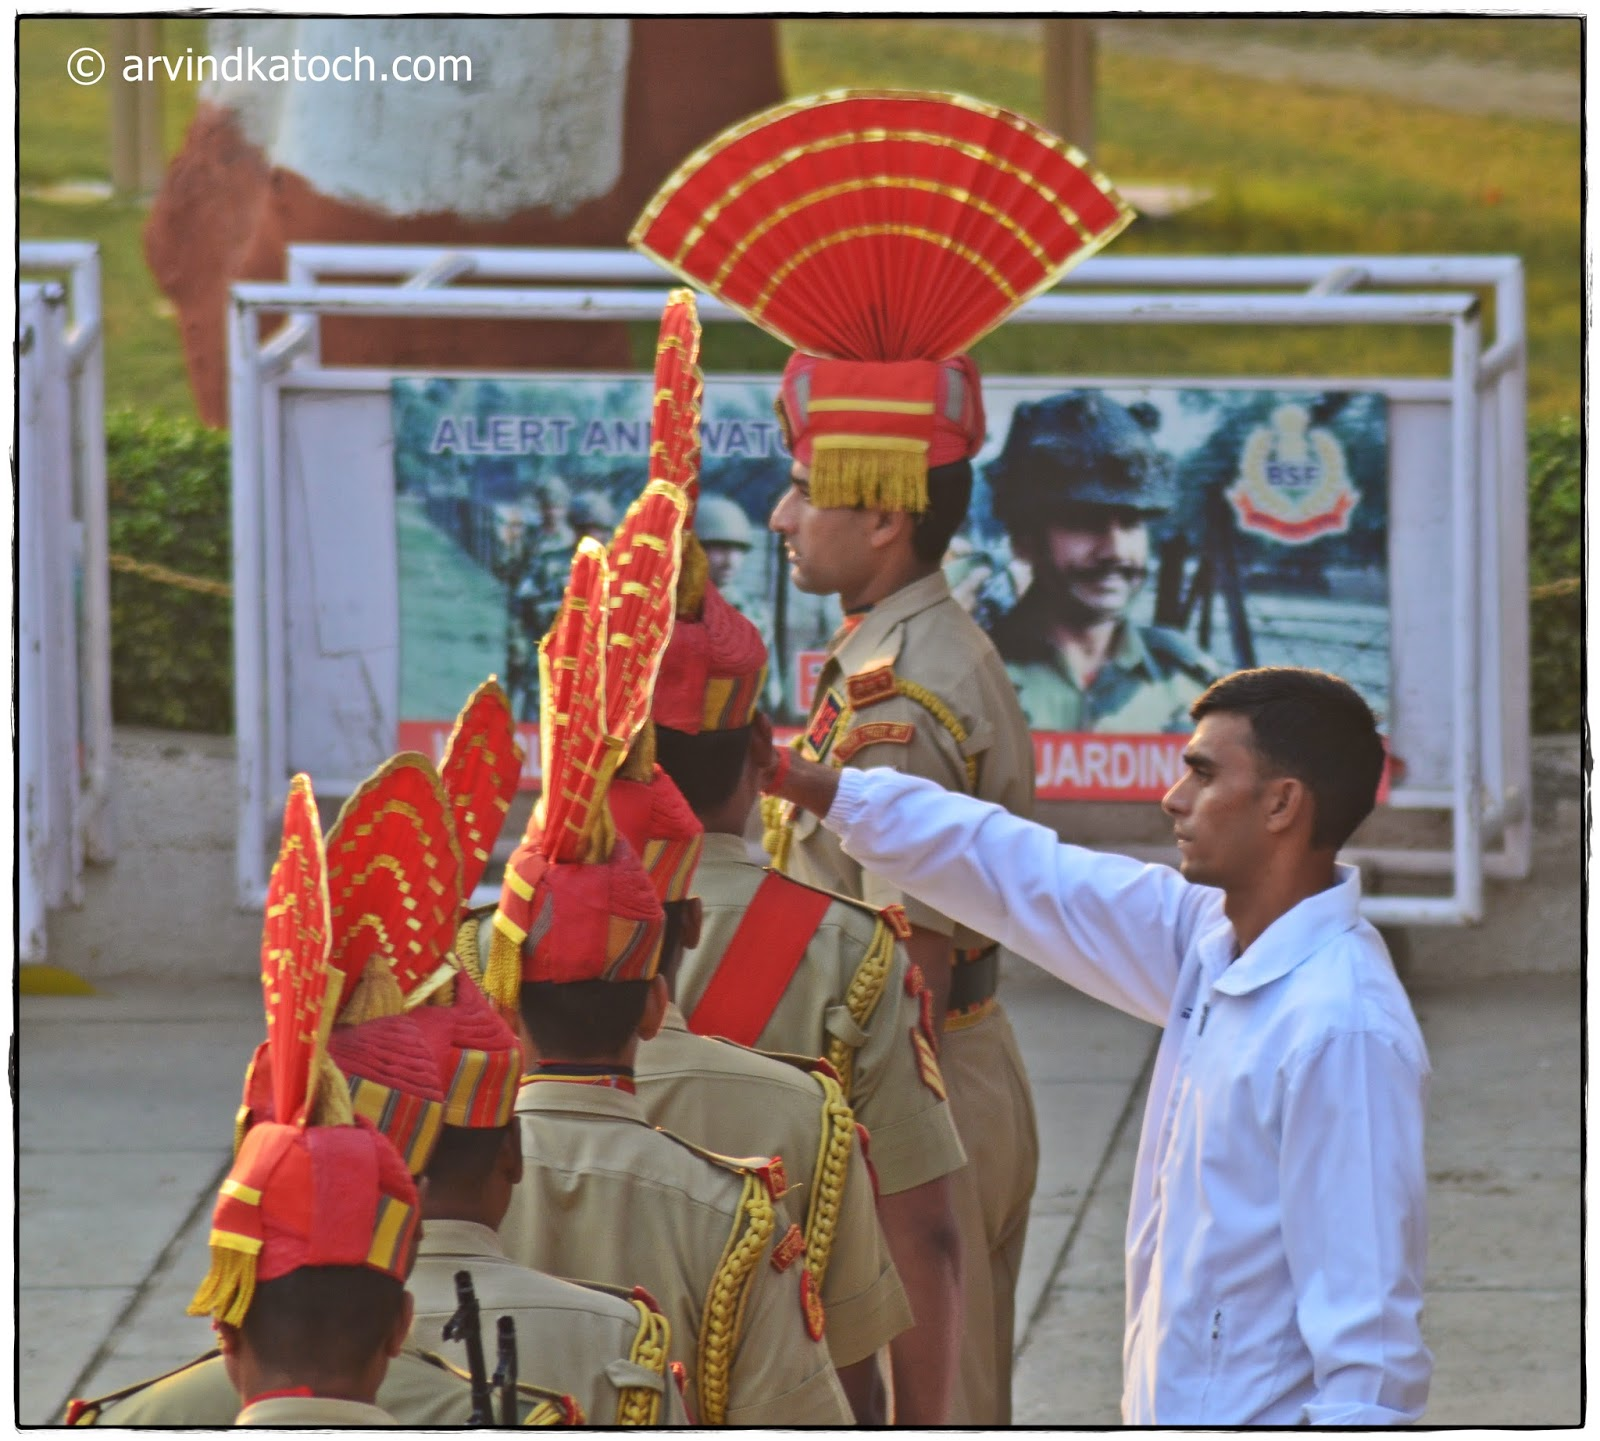 BSF Jawans, Beating Retreat Ceremony, Wagah Border